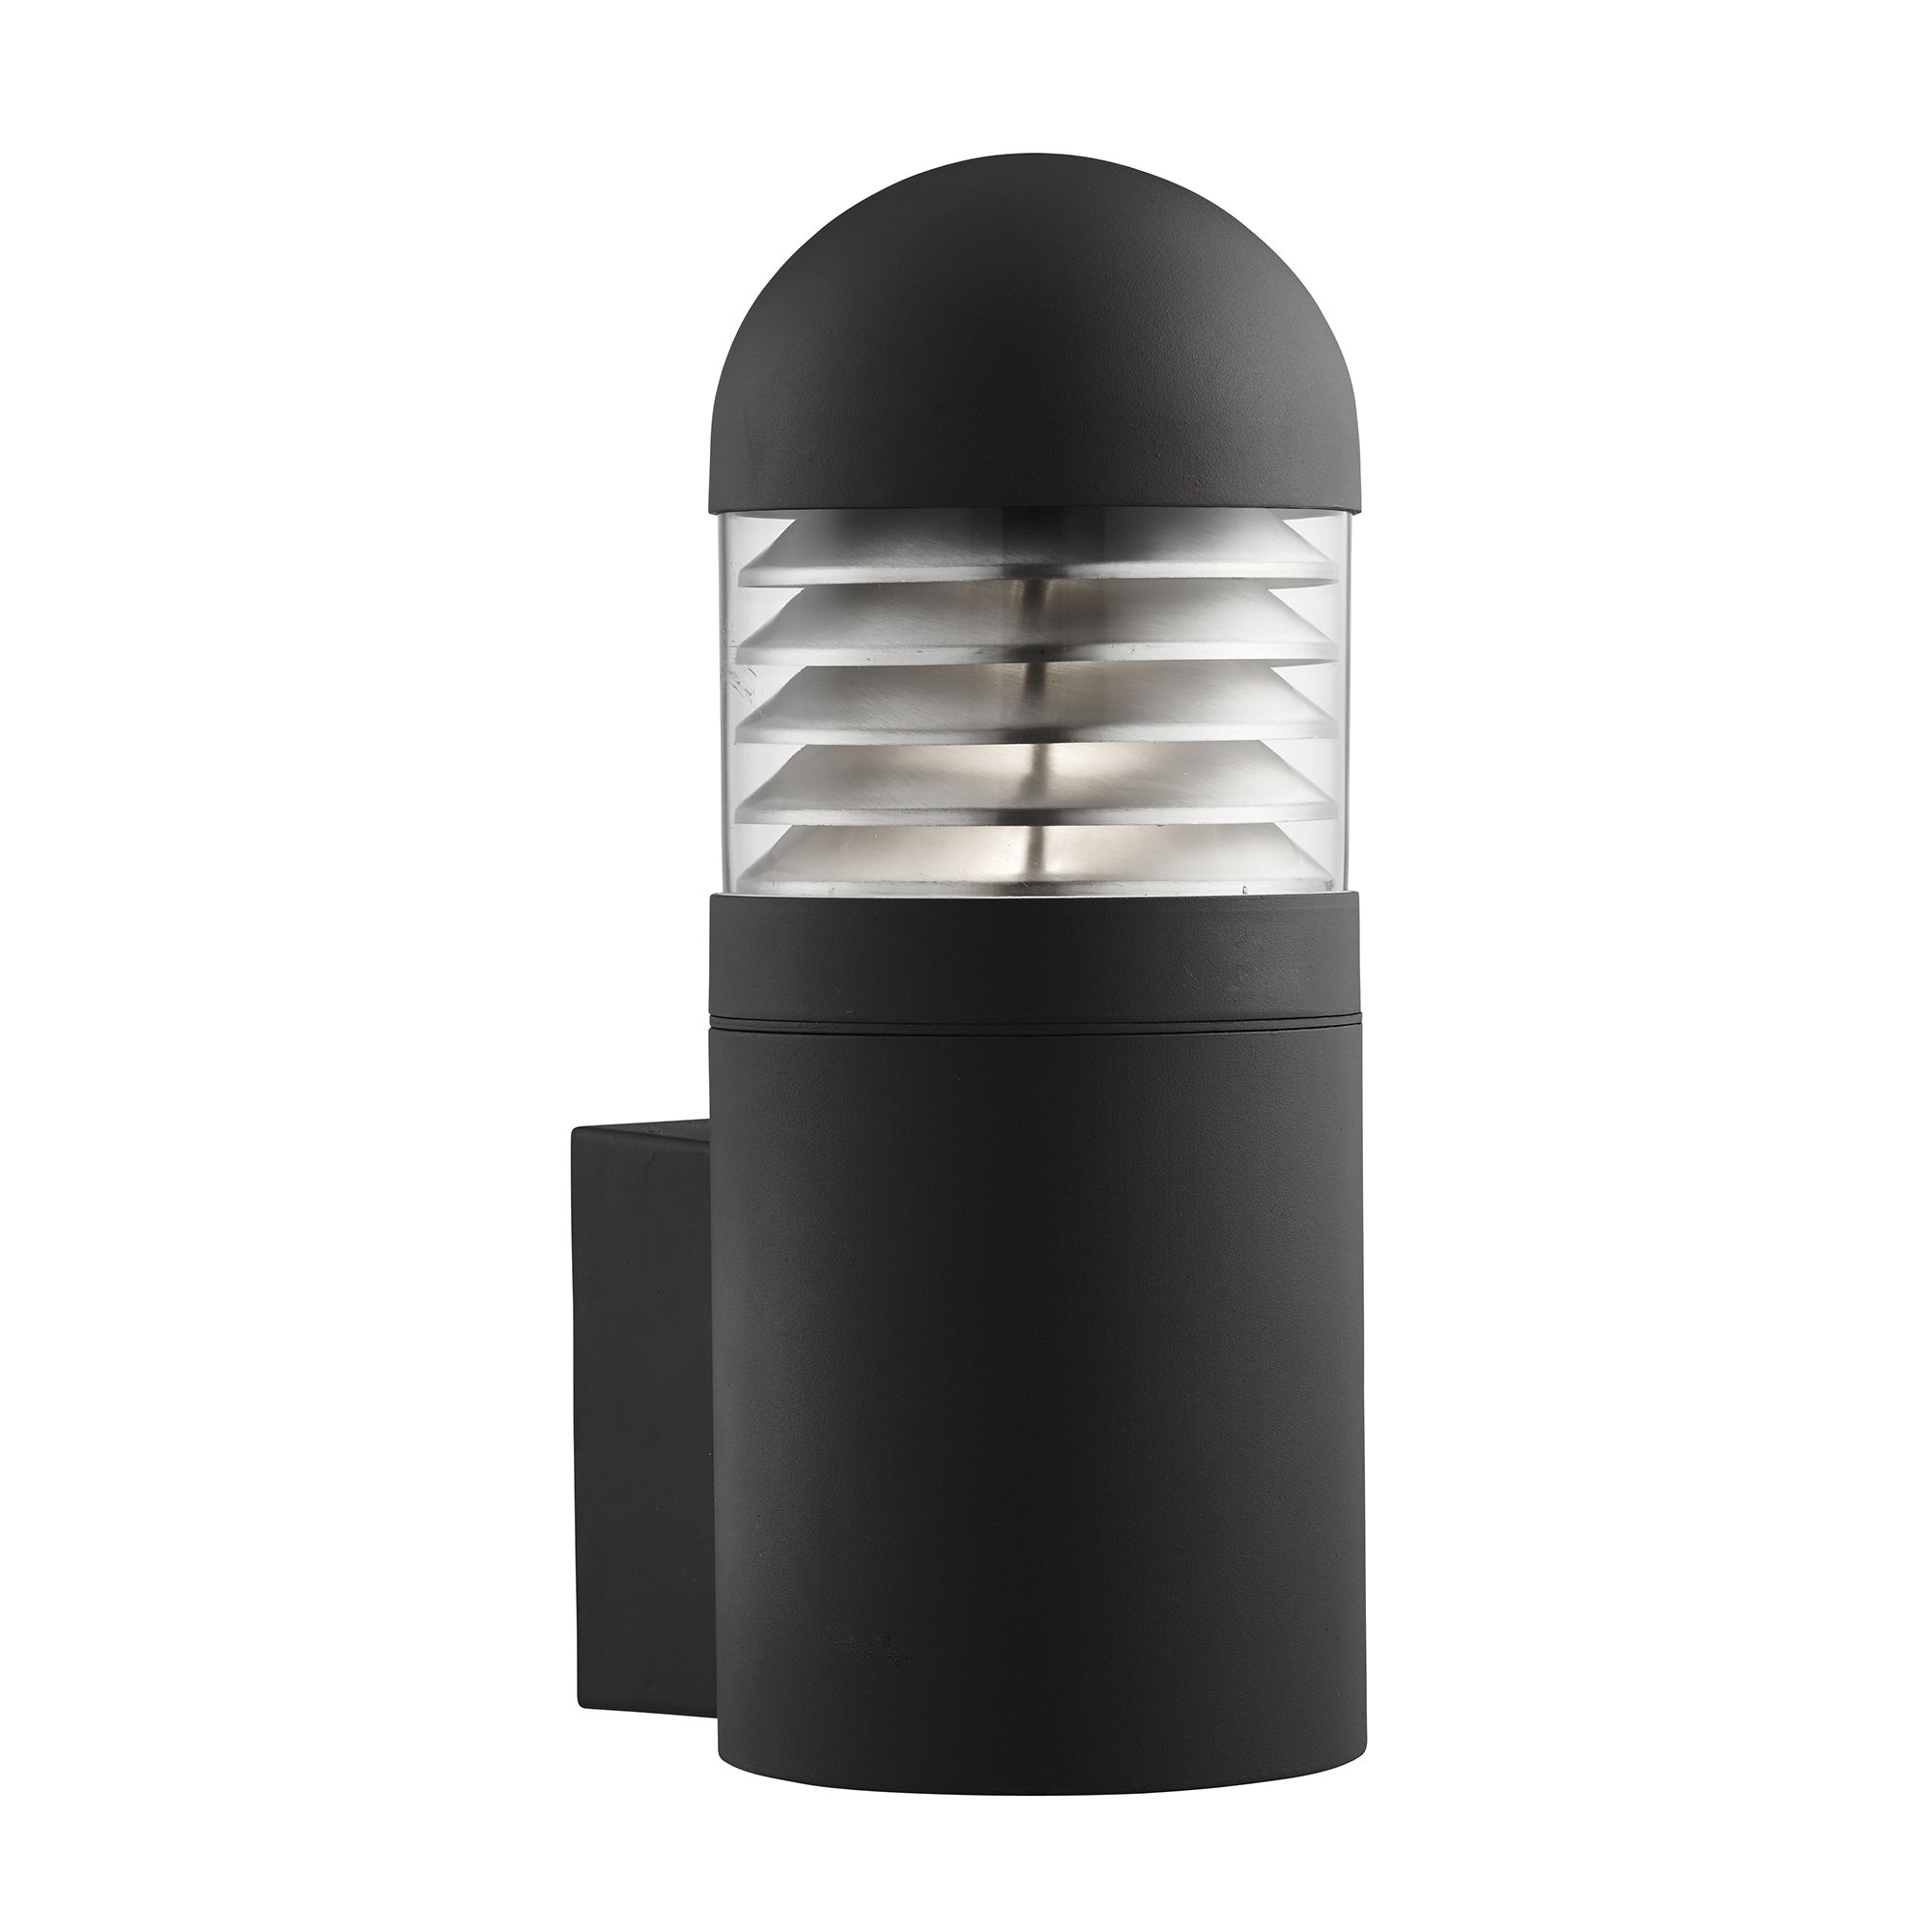 Black Ip44 Outdoor Wall Light With Polycarbonate Diffuser